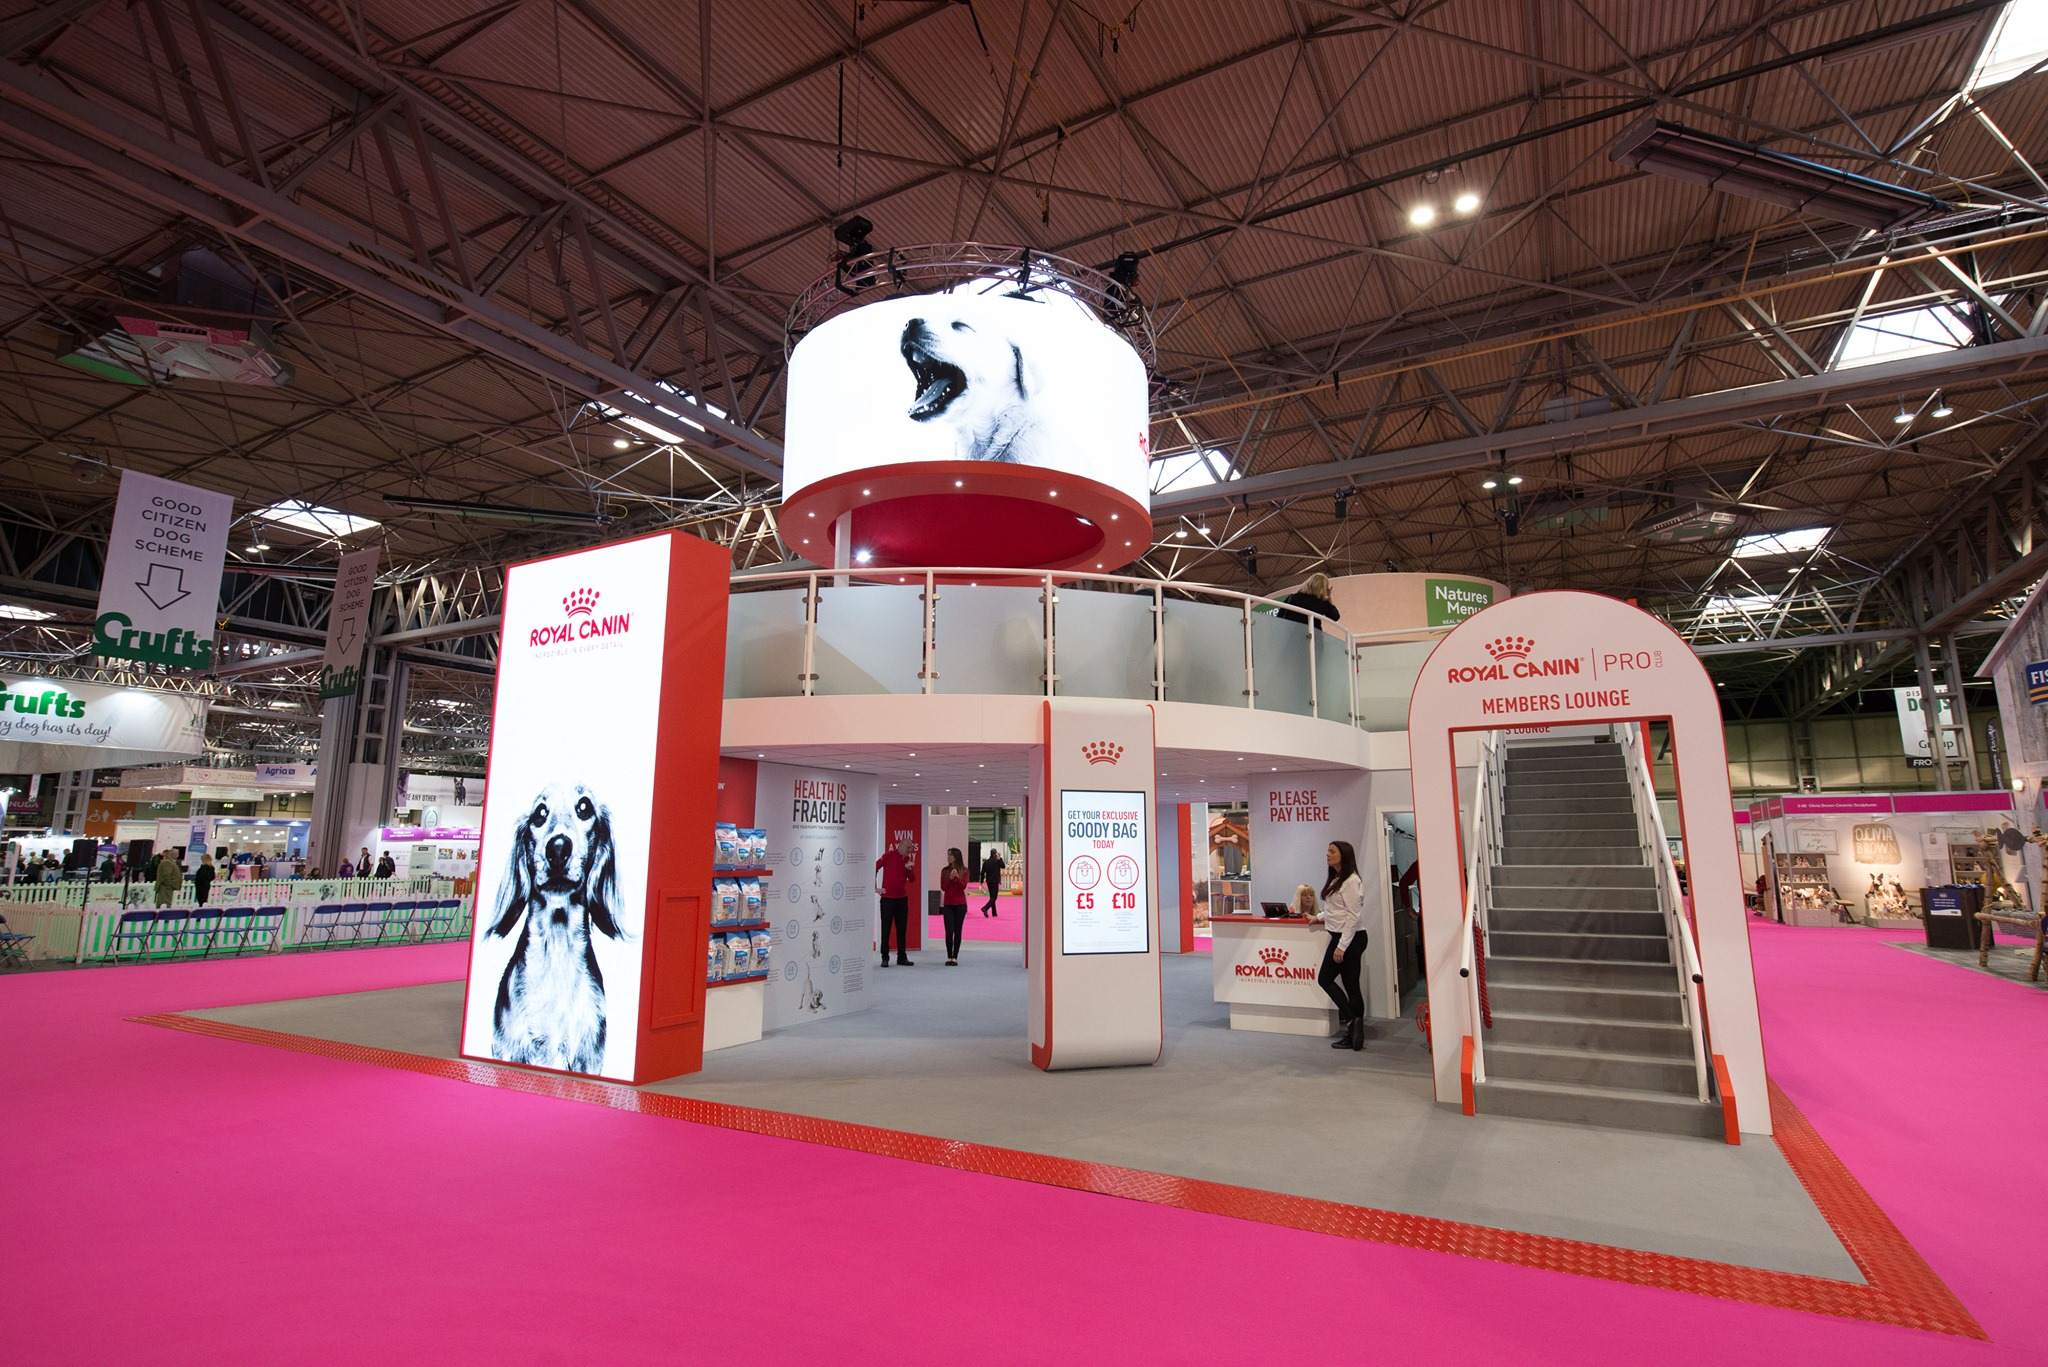 sovereign exhibitions and events - exhibition and hospitality stand example - indoor exhibition stand